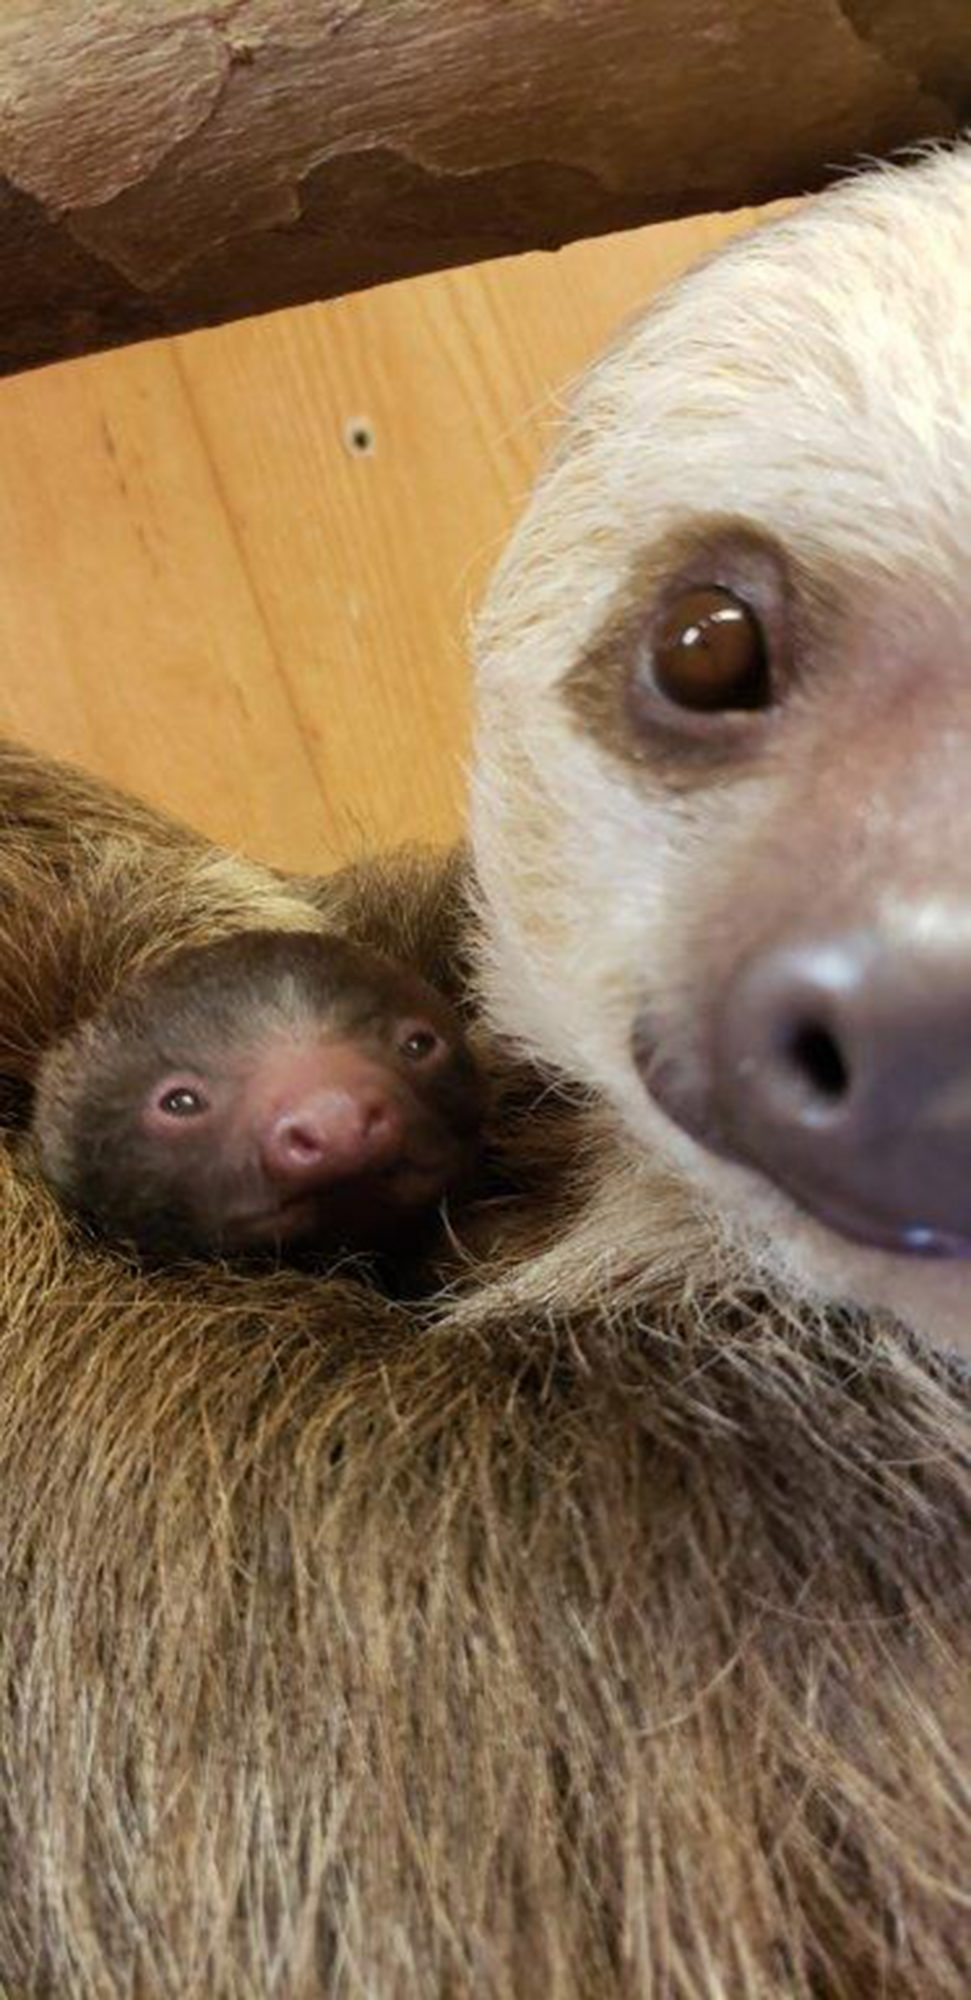 Bonnie the Zoo Sloth Welcomes Adorable Baby Sloth to Help Get You Through the Week